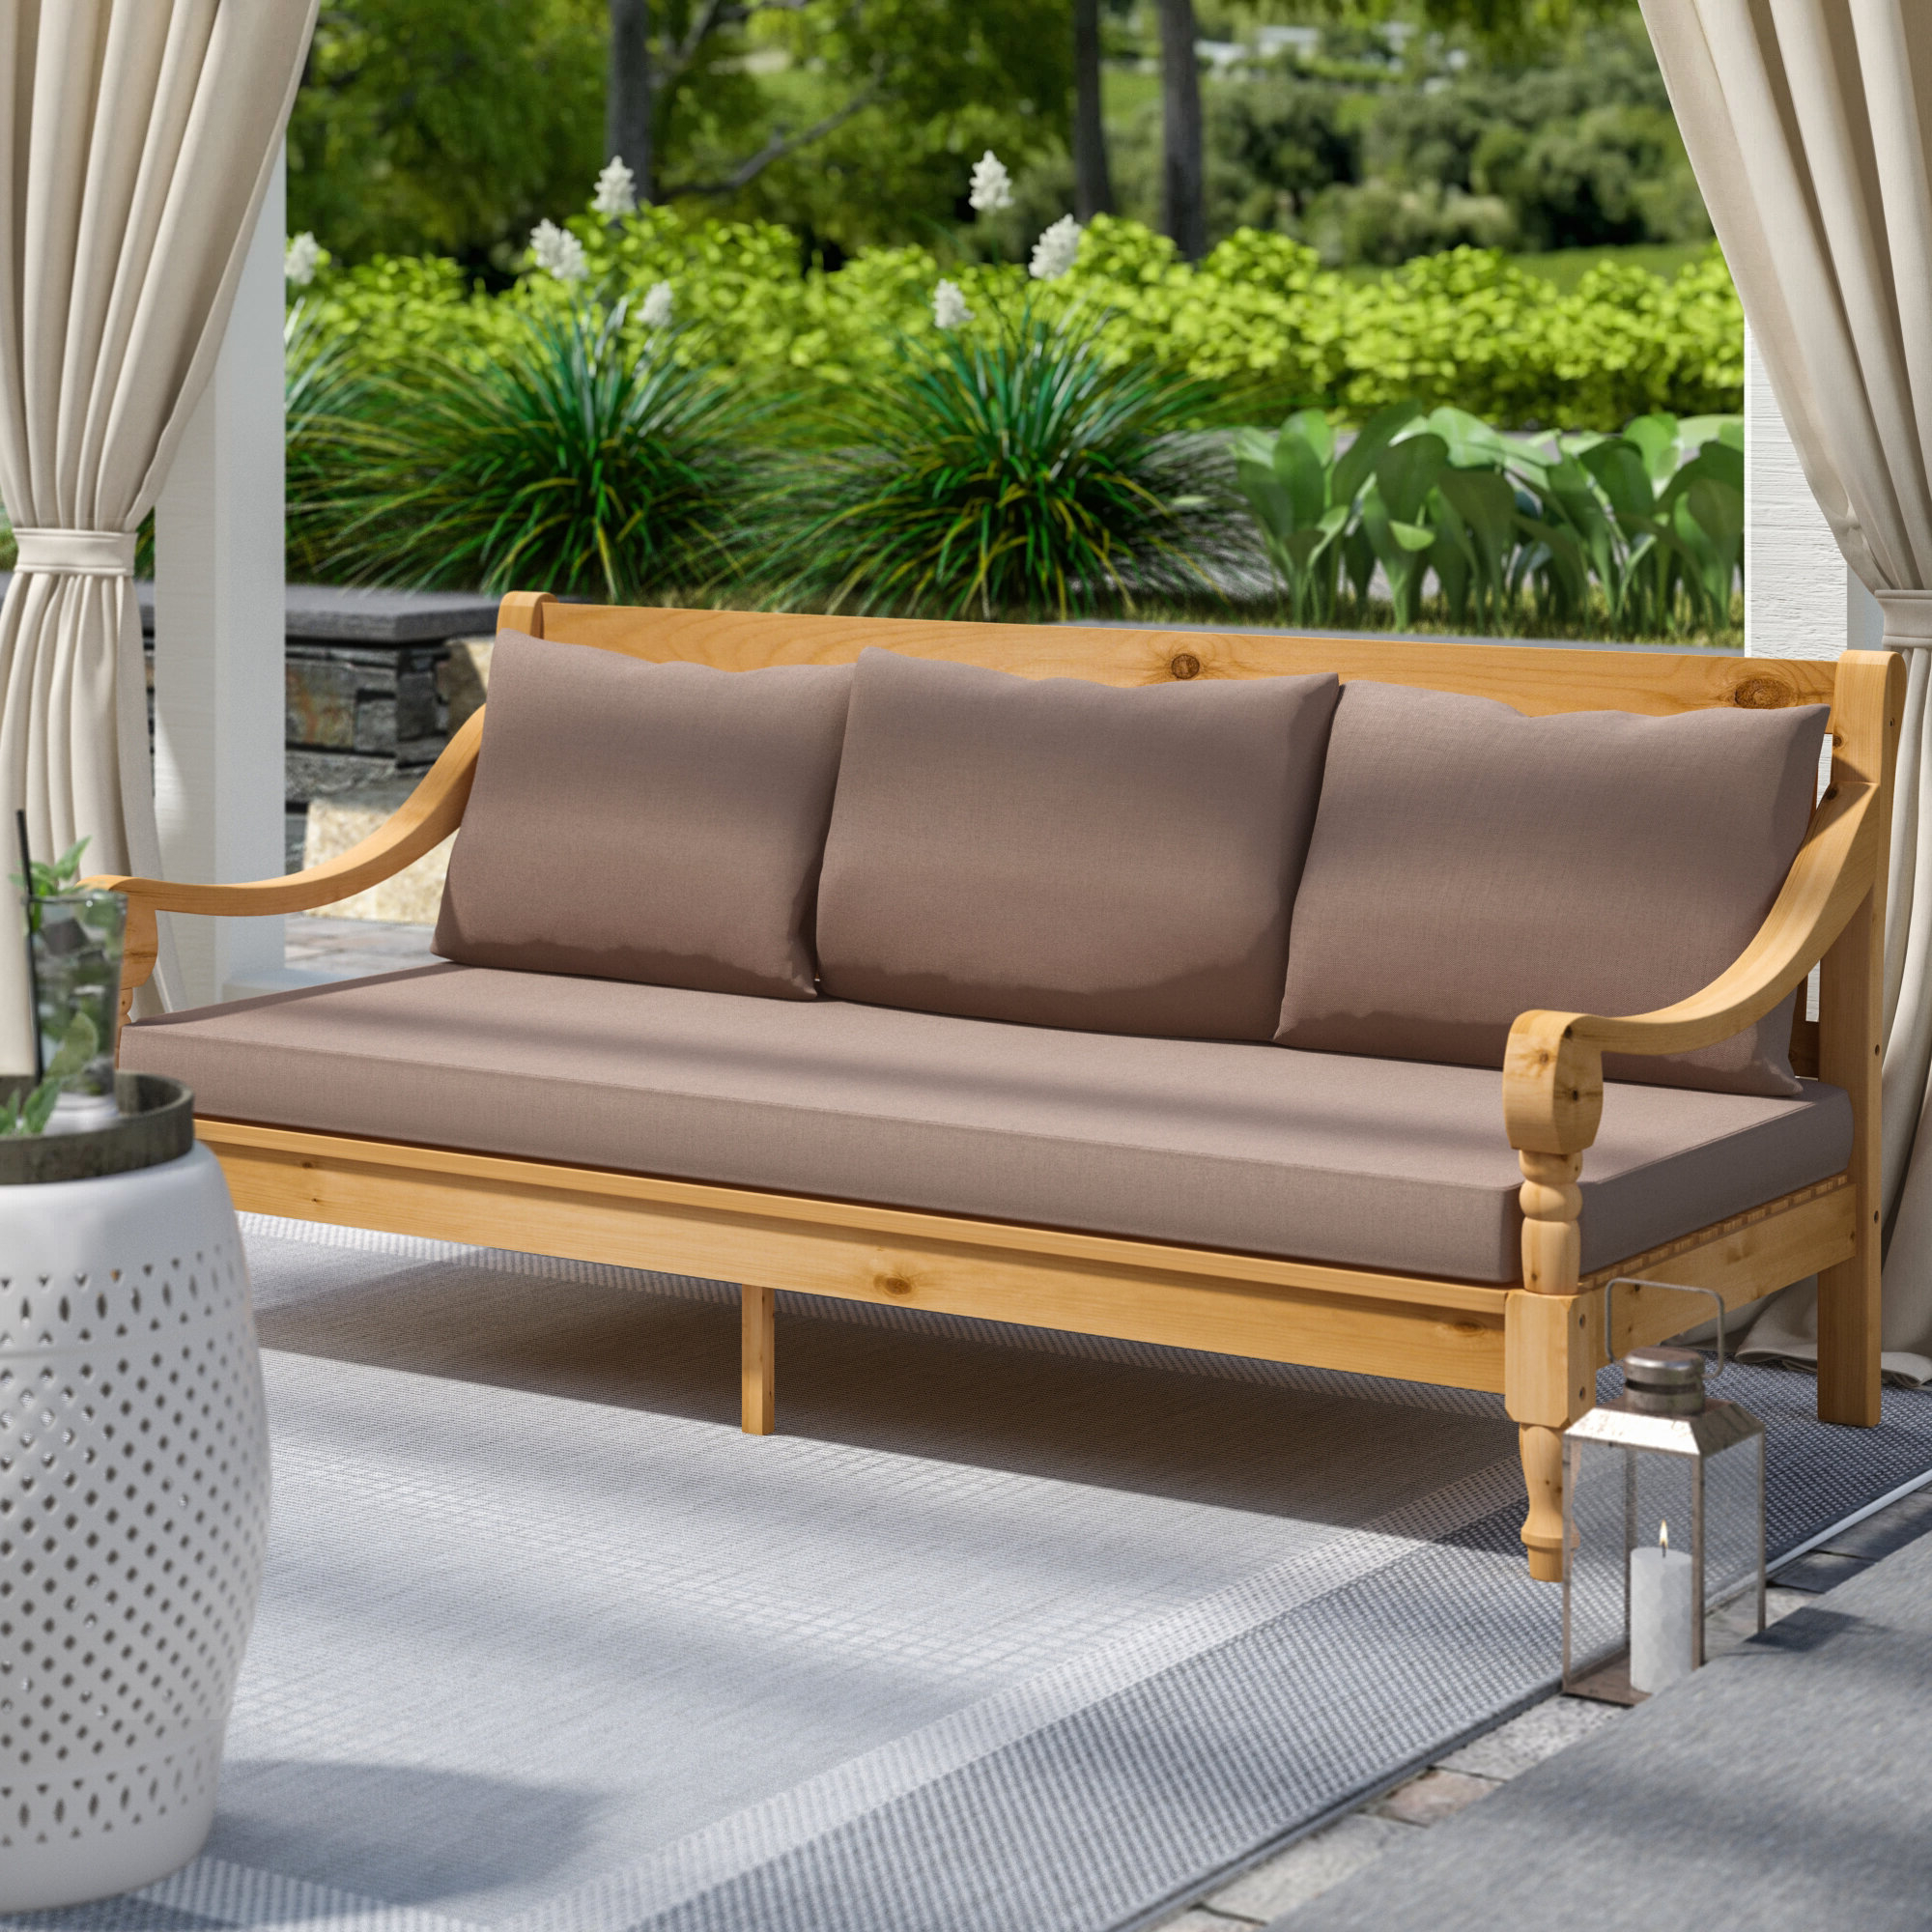 Famous Ellanti Patio Daybeds With Cushions Pertaining To Beachcrest Home Roush Teak Patio Daybed With Cushions (View 7 of 25)